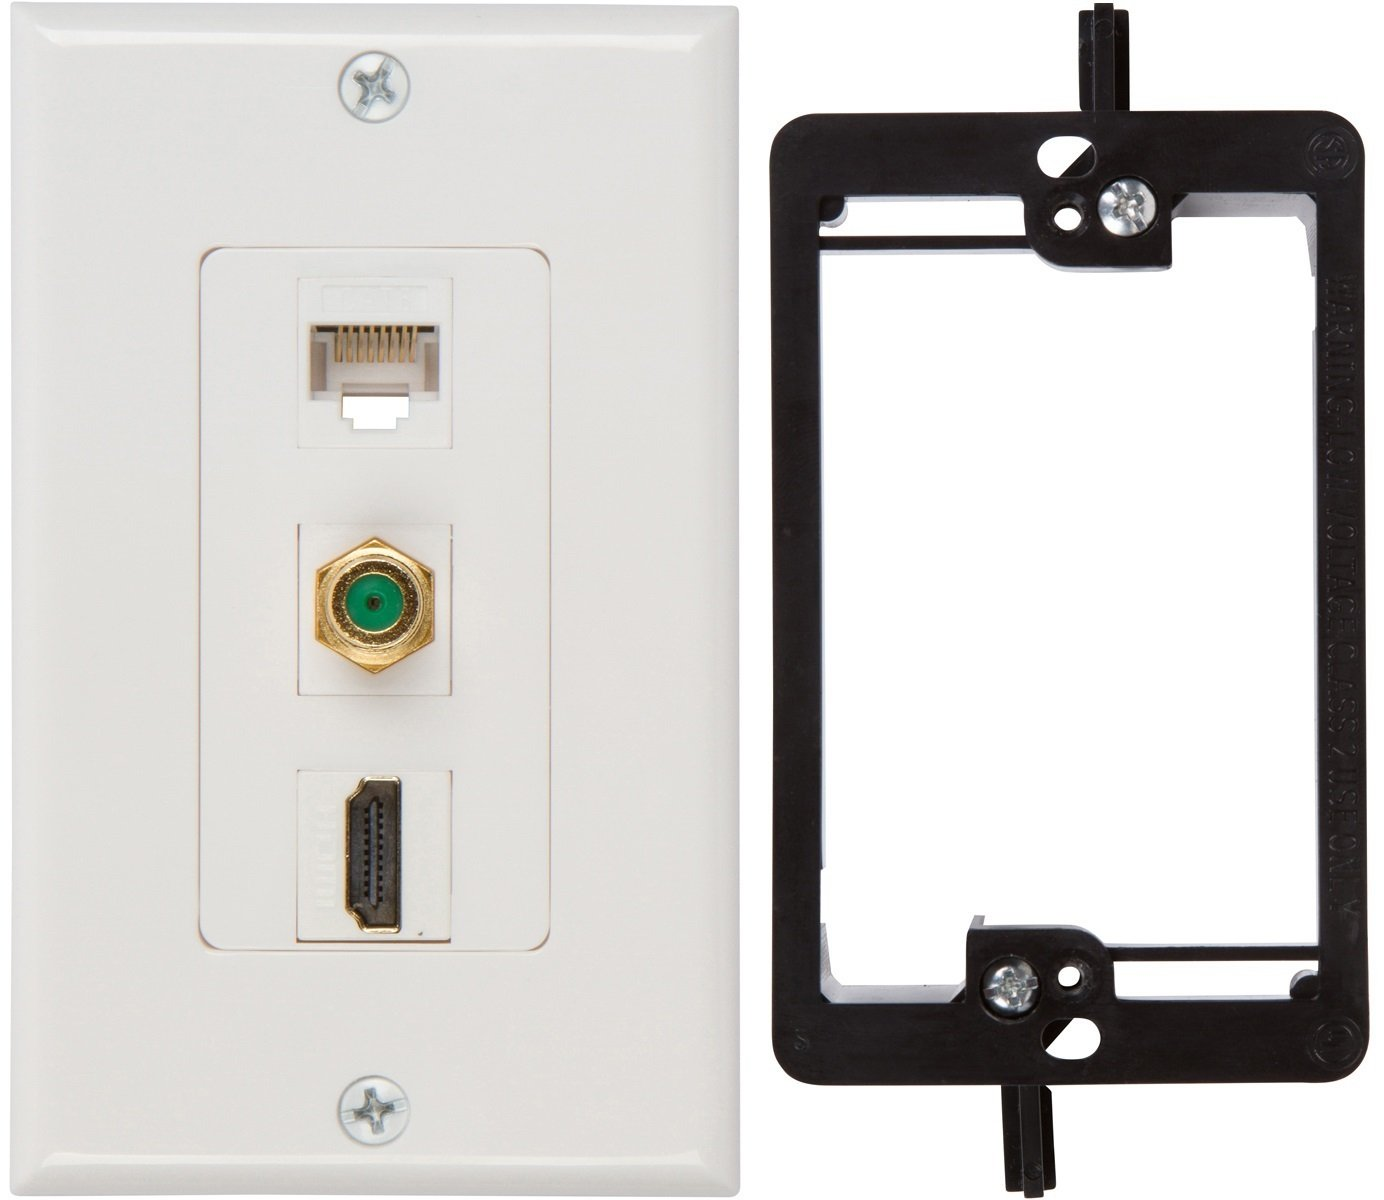 Datacomm 32-2024-BR 2.4 GHz Coax Wall Plate Brown